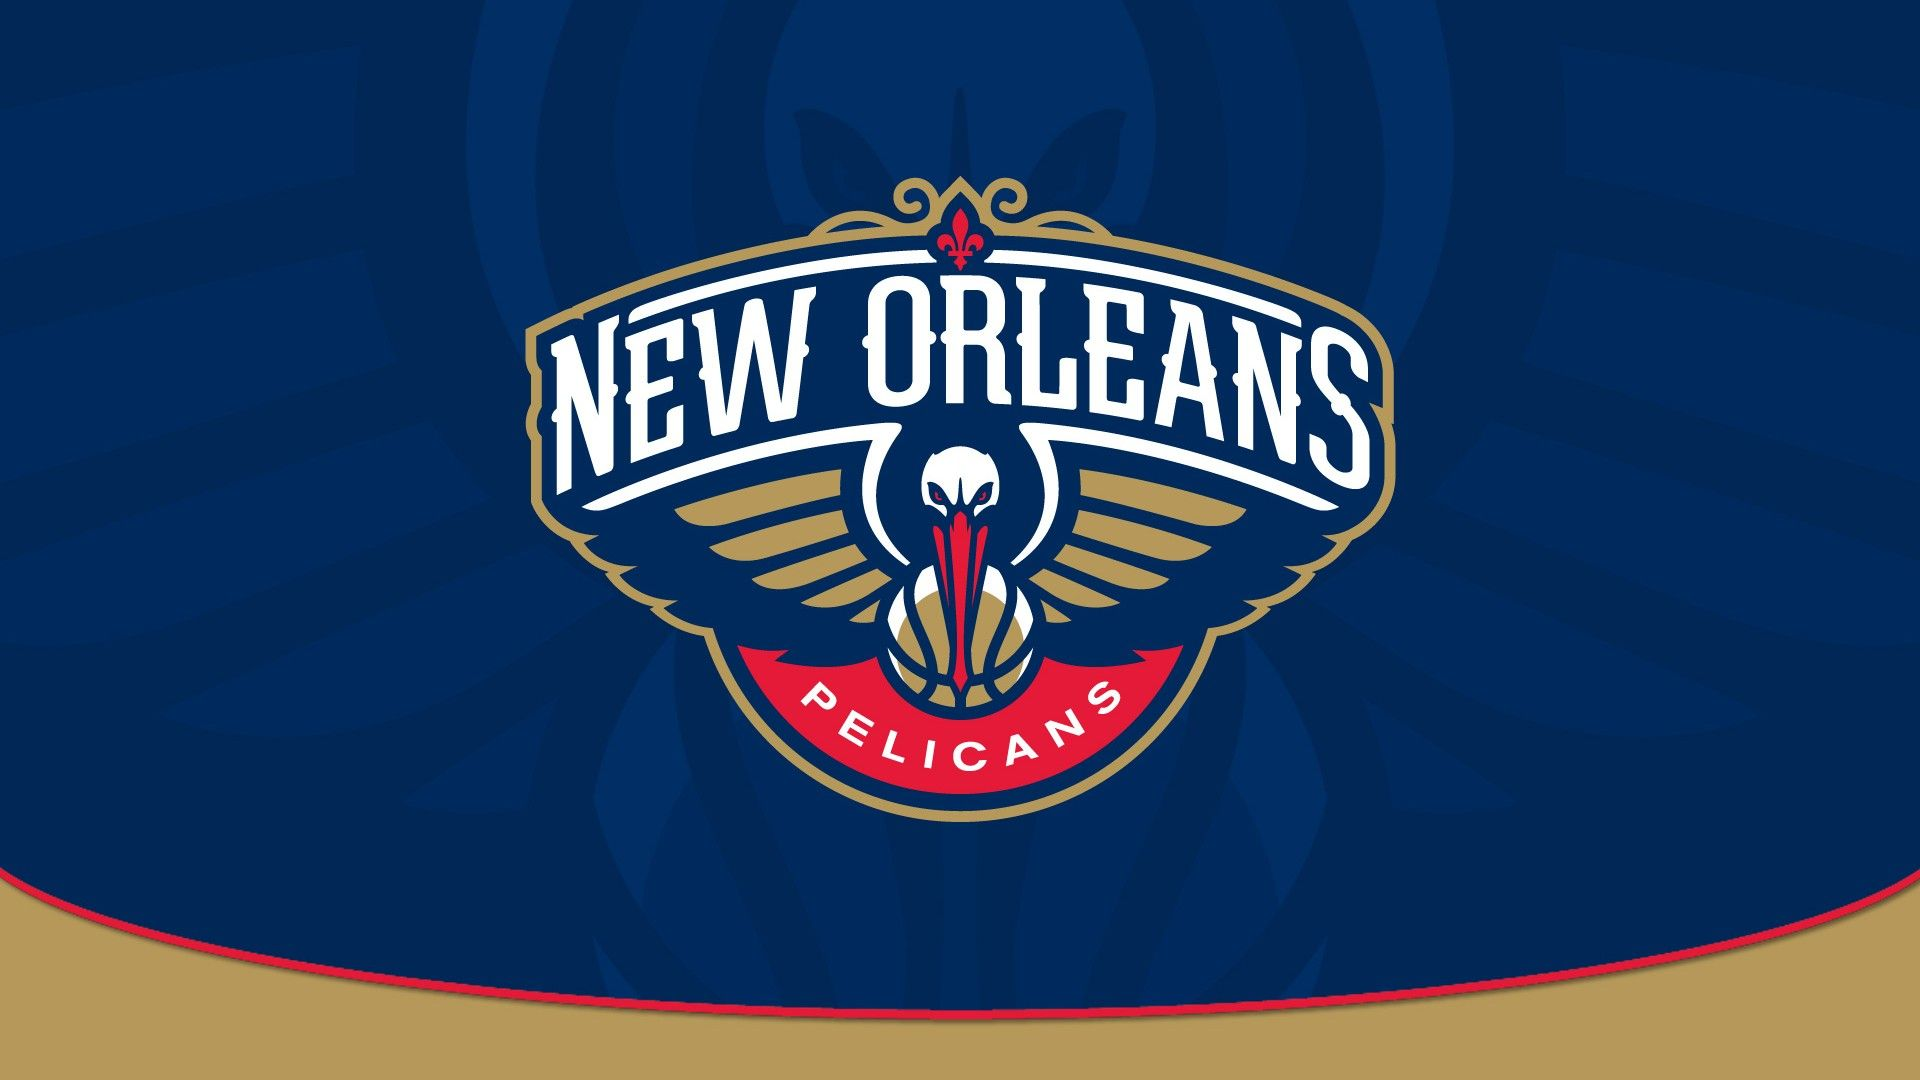 New Orleans Pelicans Wallpaper Hd New Orleans Pelicans